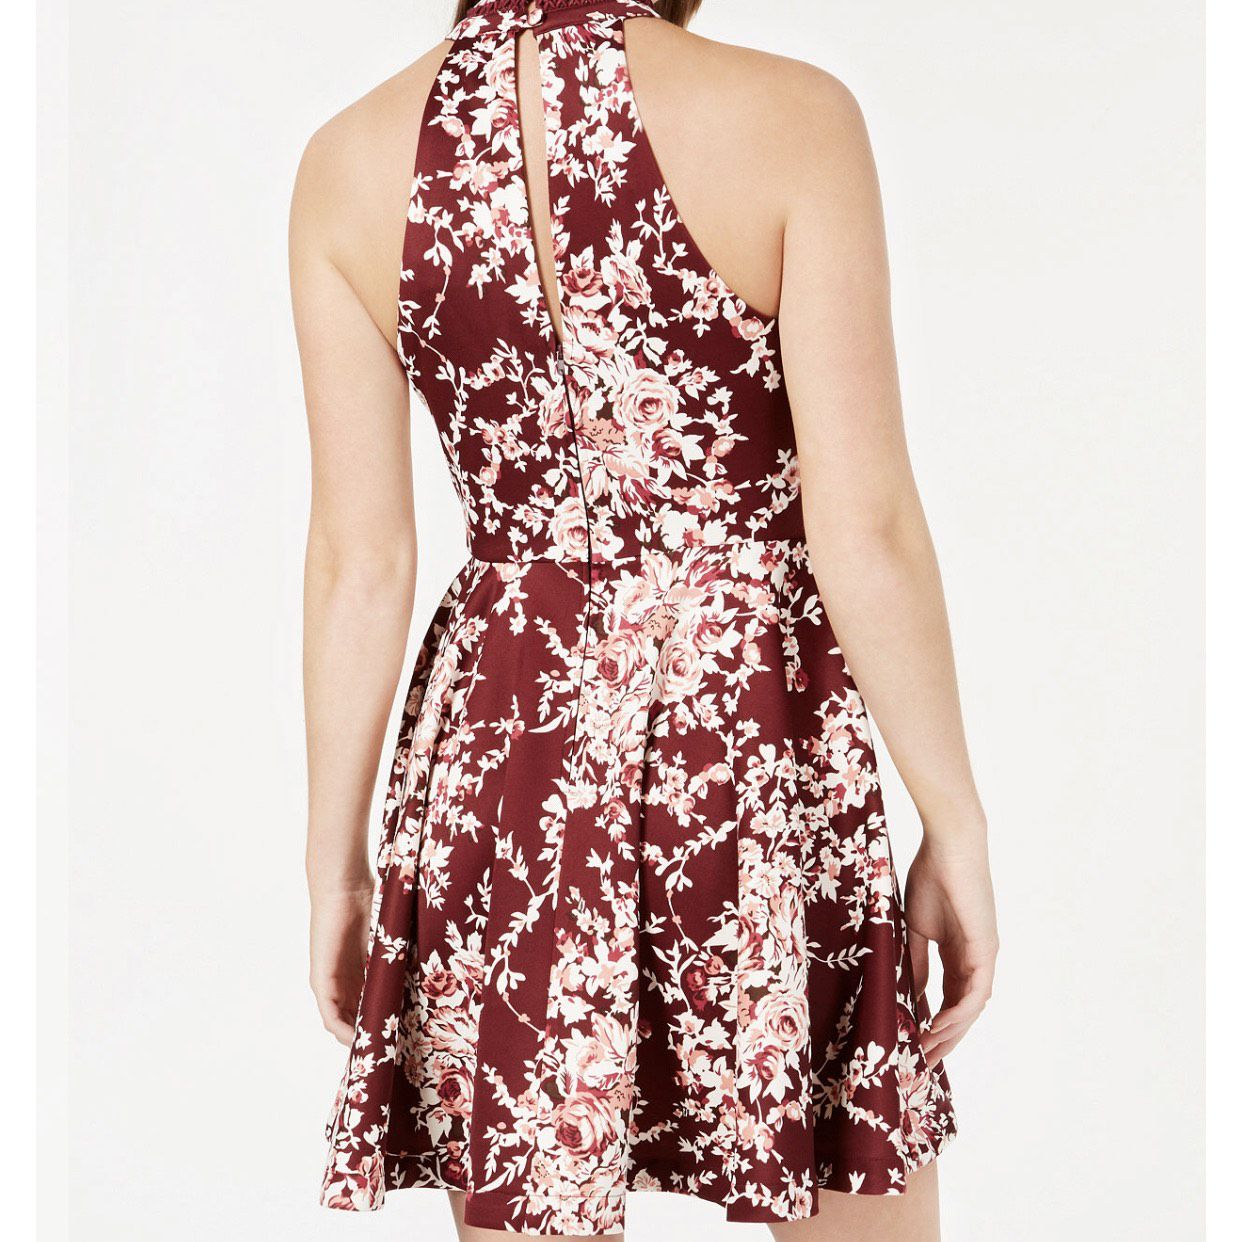 B. Darlin Red Size 2 Wedding Guest Cocktail Dress on Queenly